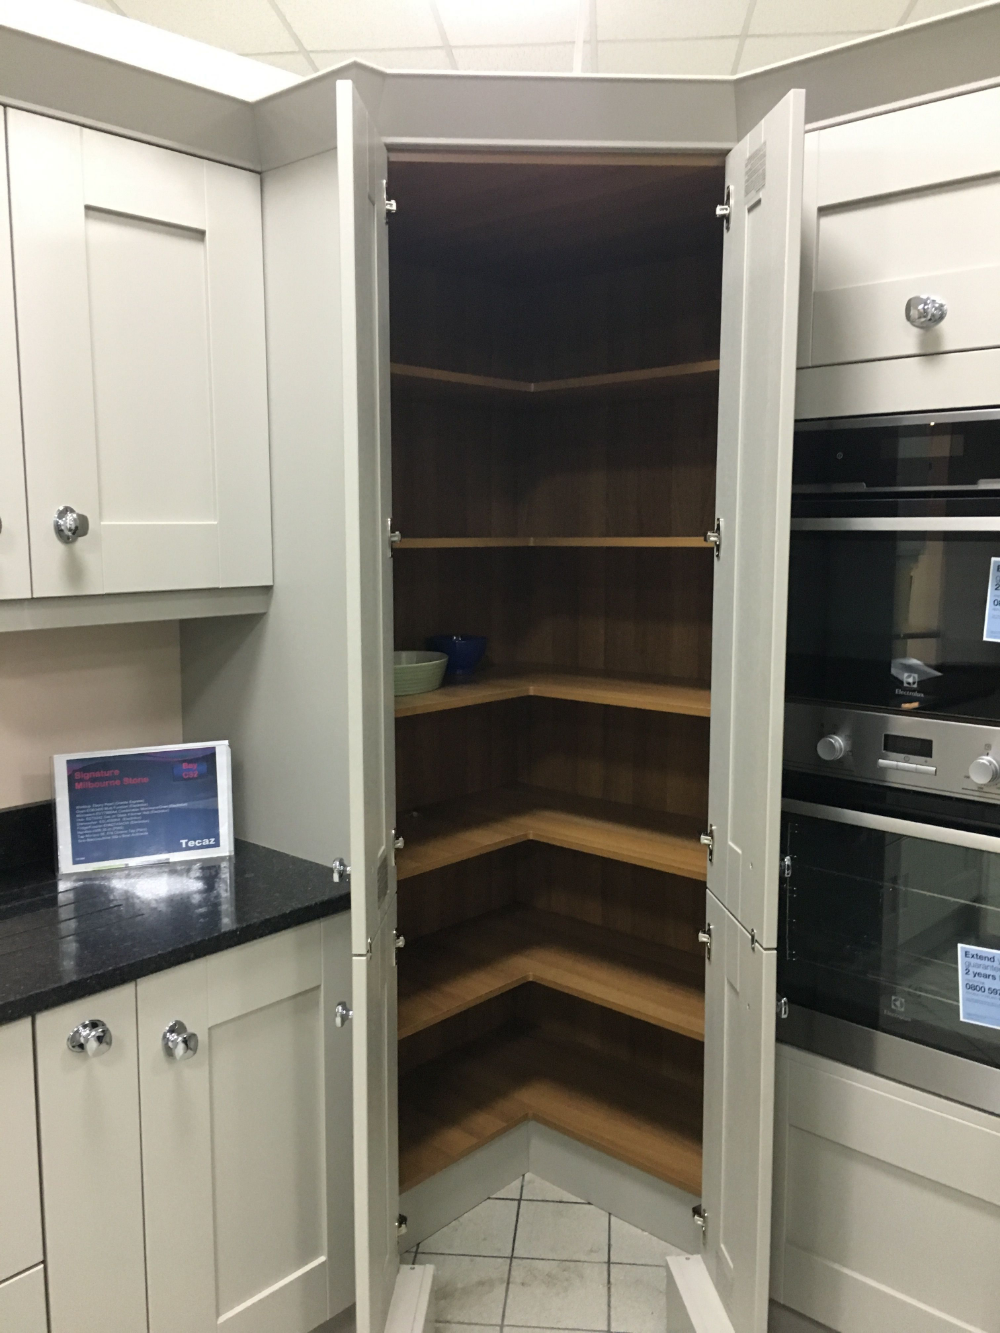 Howdens Corner Larder Unit Google Search Simple Kitchen Remodel Ikea Kitchen Remodel Kitchen Remodel Small